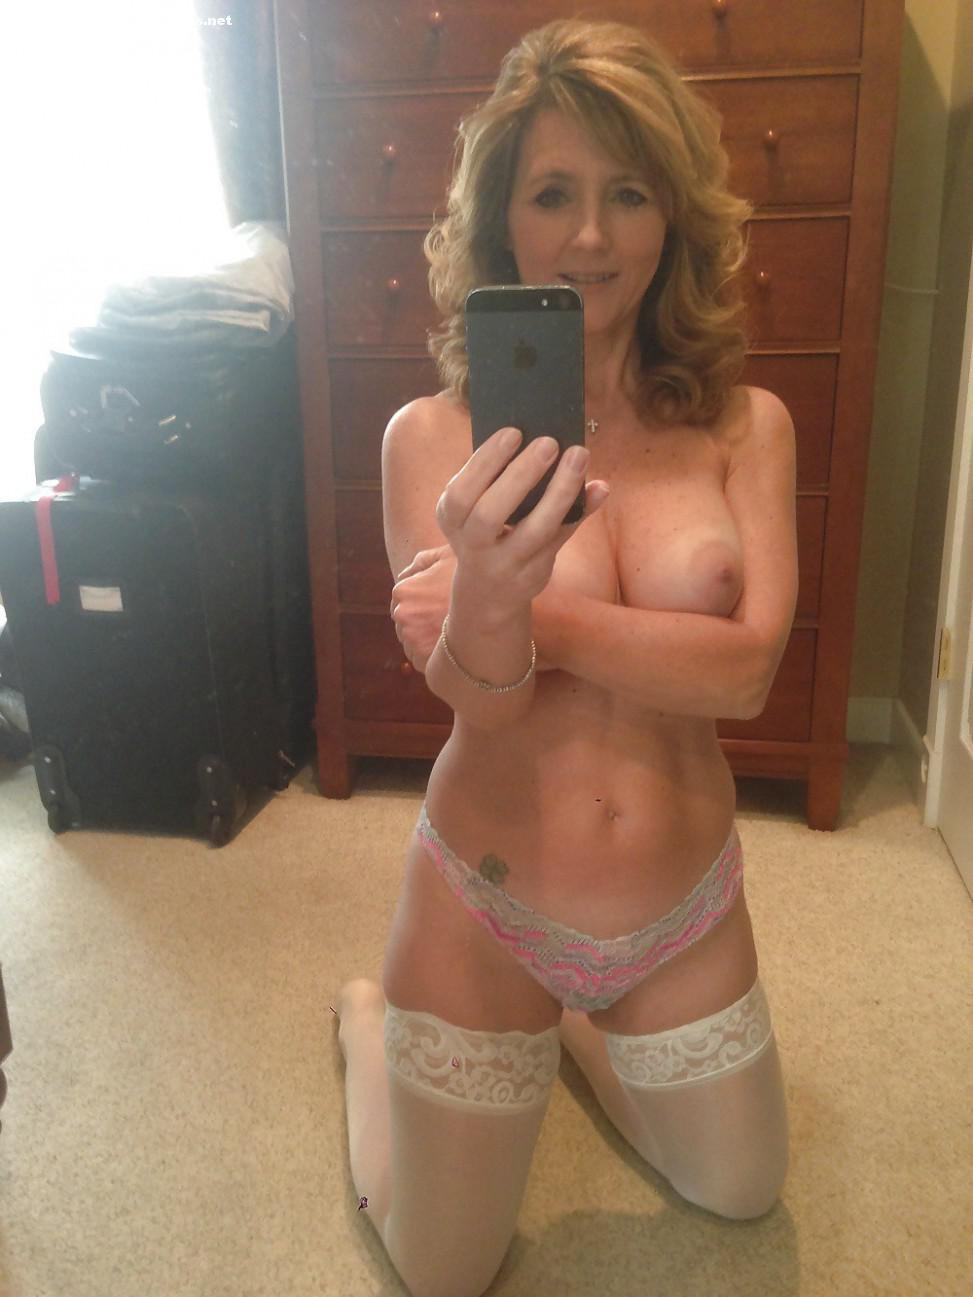 naked milf insertion sex selfies